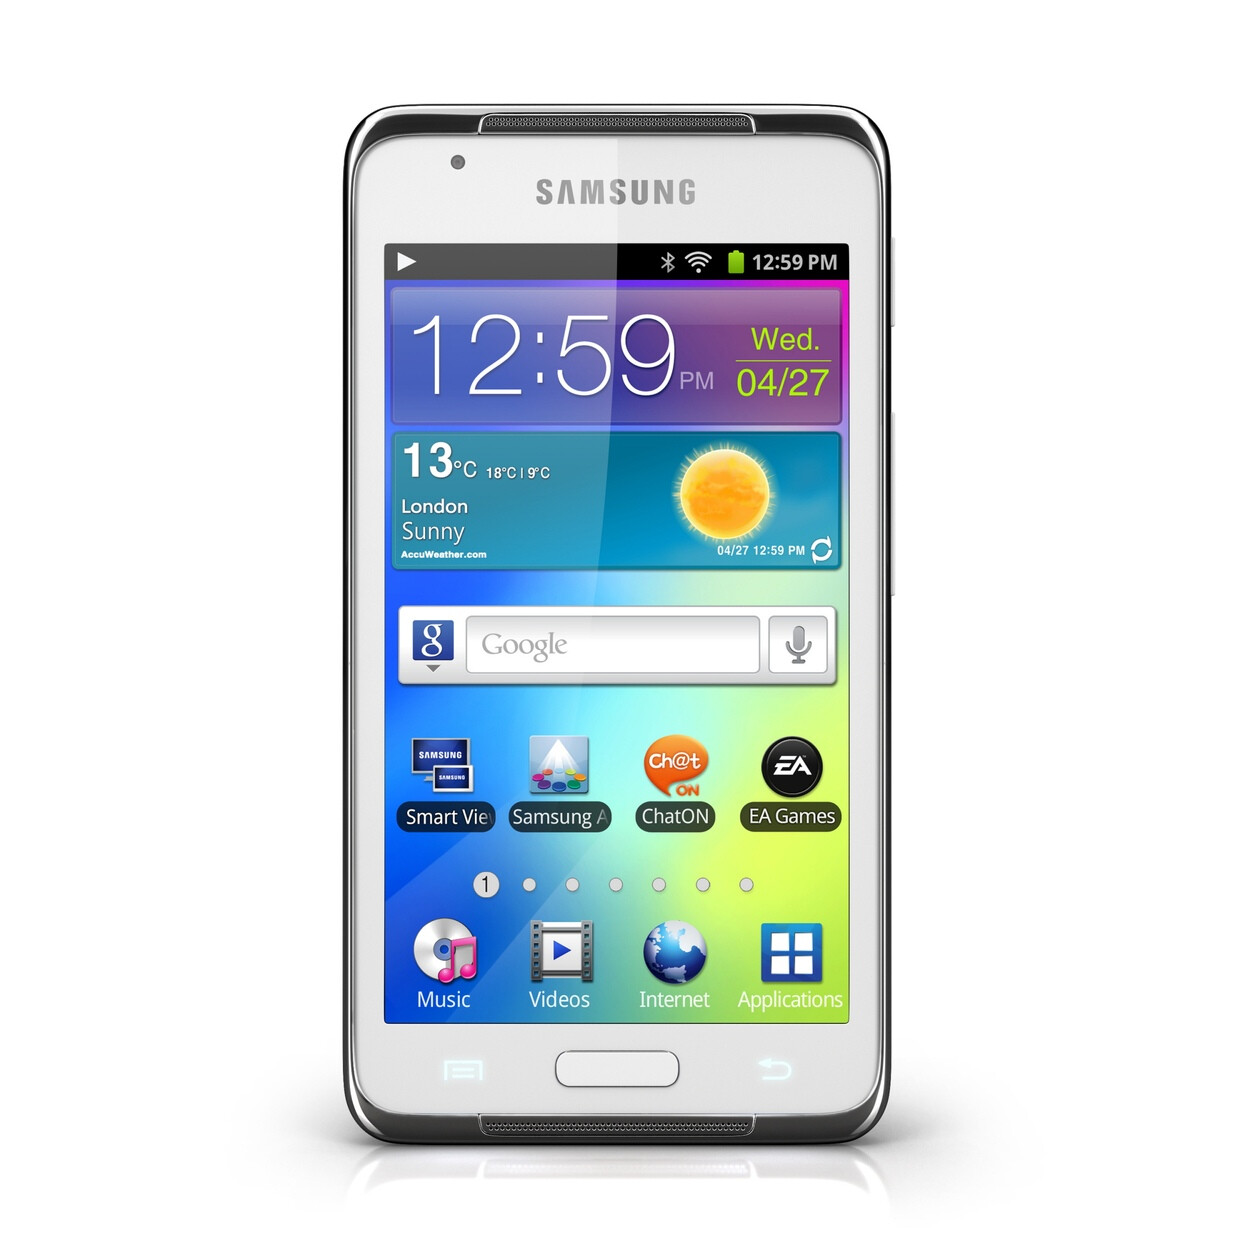 Samsung Galaxy S WiFi 4.2 portable Android media player is